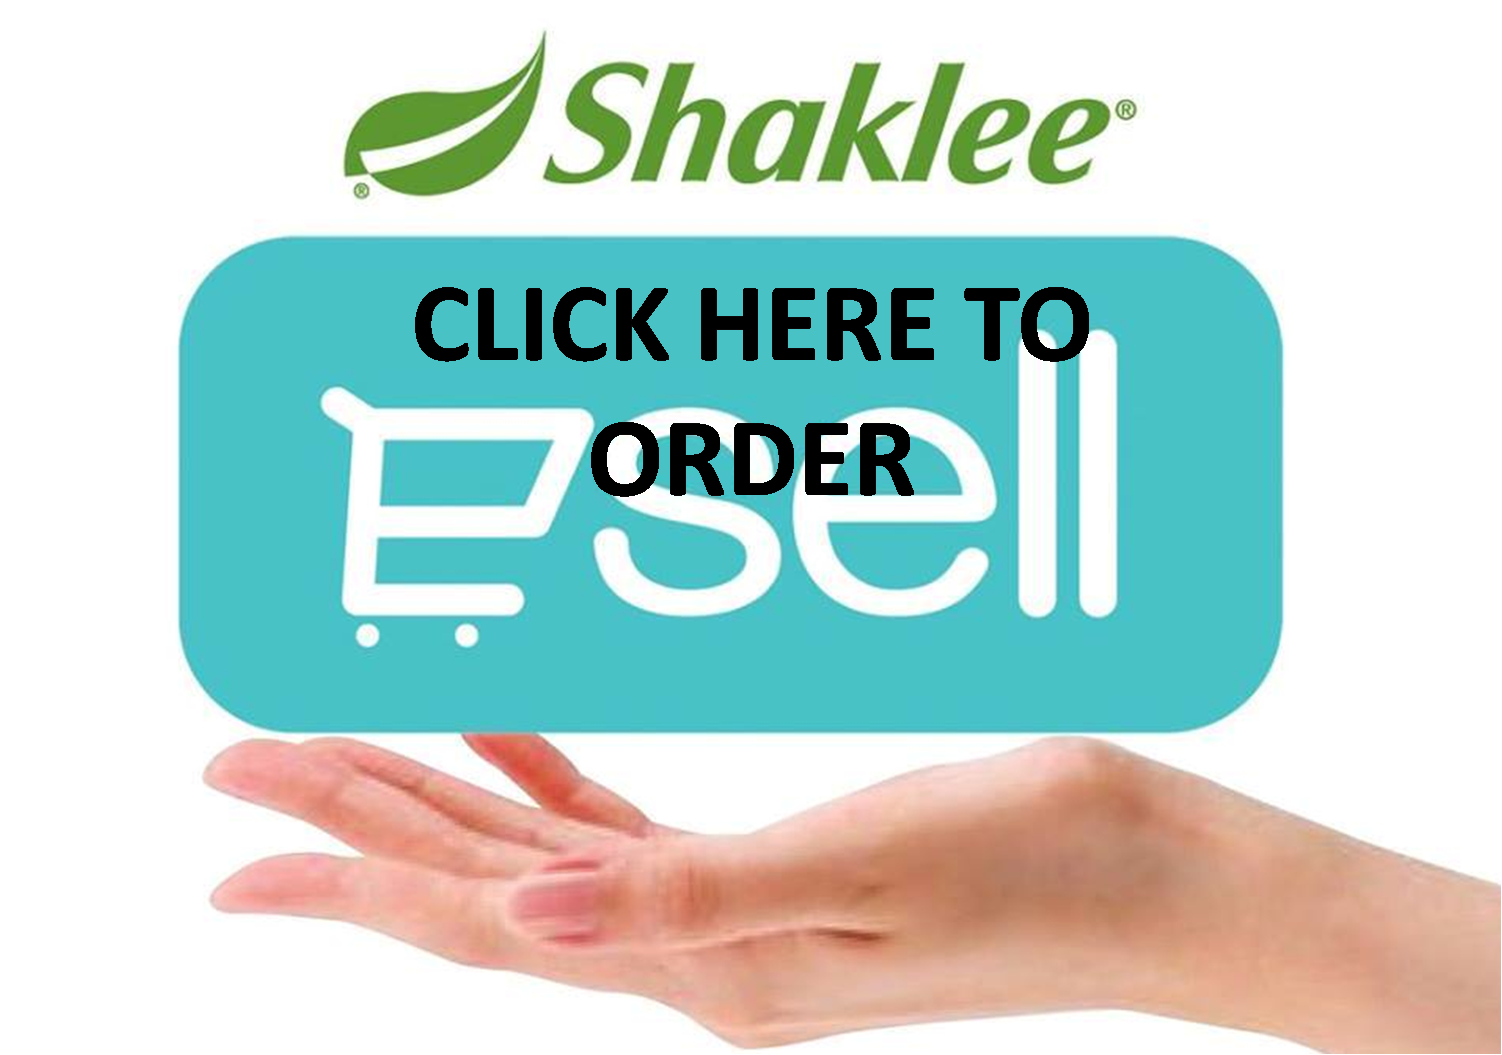 https://www.shaklee2u.com.my/widget/widget_agreement.php?session_id=&enc_widget_id=ecd610837c2670b1acbe1d57821055b8